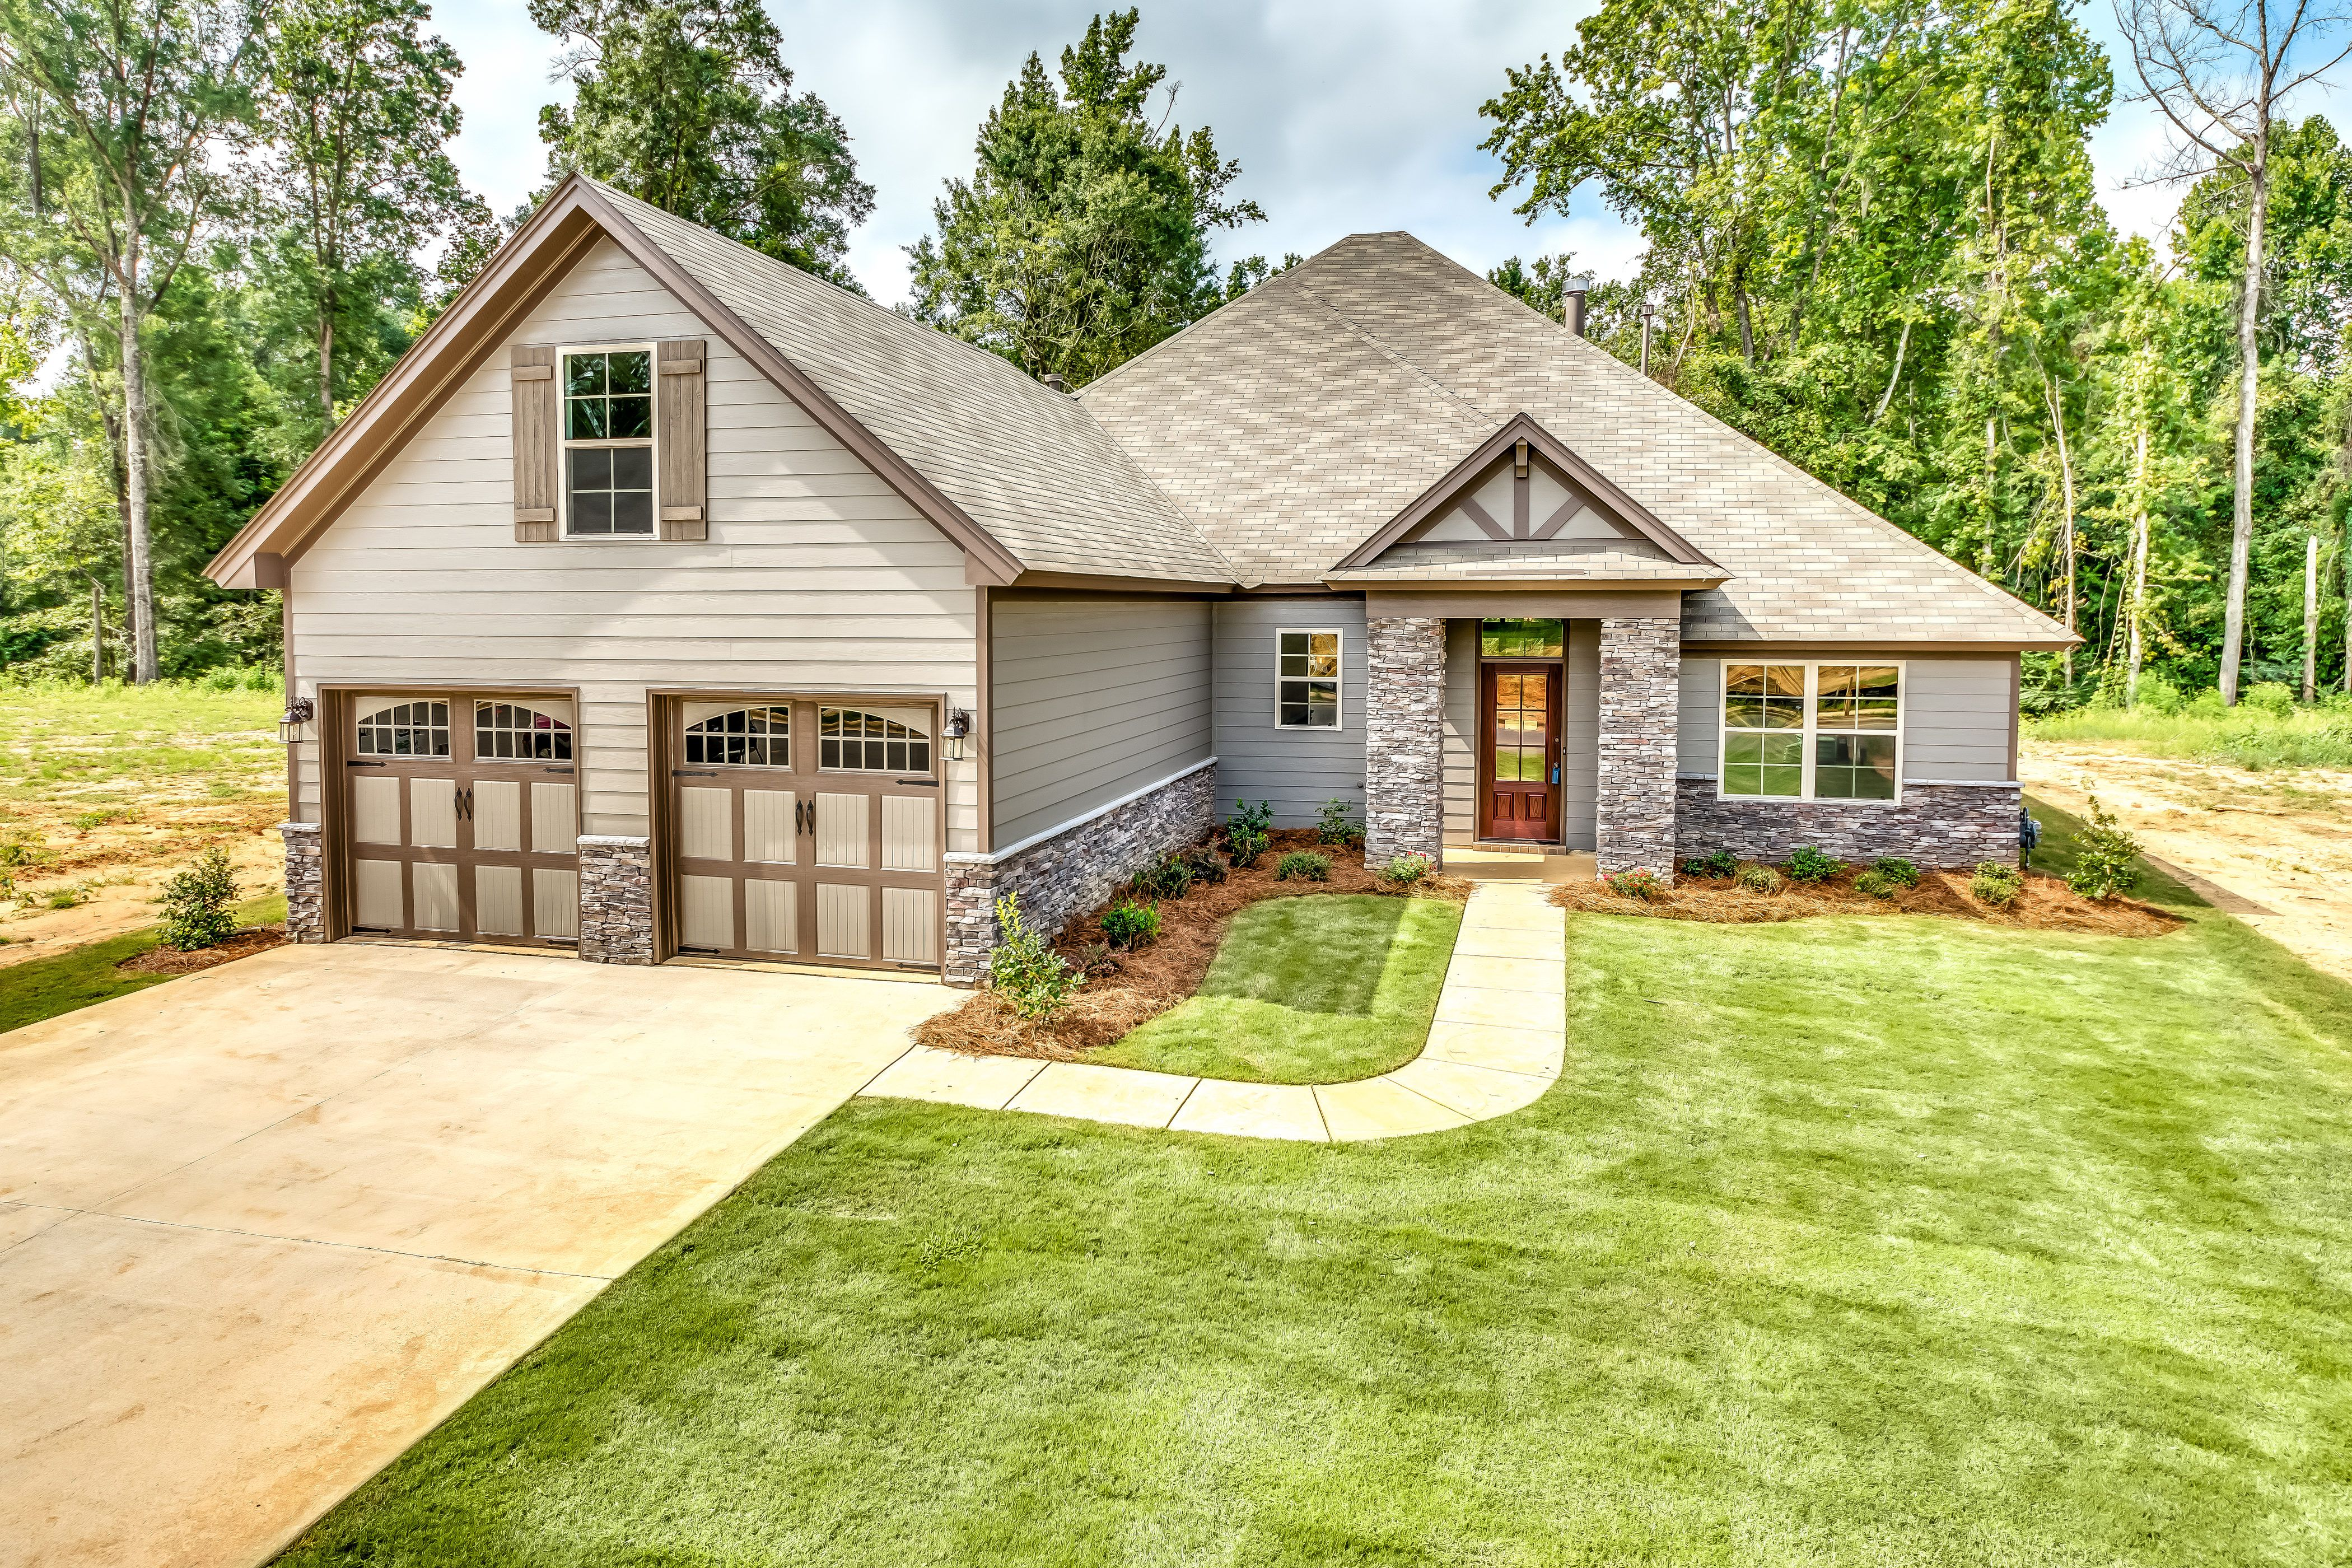 Gorgeous House With Light Grey Siding And Brick Exterior To Serve As An Accent Along With The Brown Wood Paneled Shutters Light Brick Exterior Brick New Homes